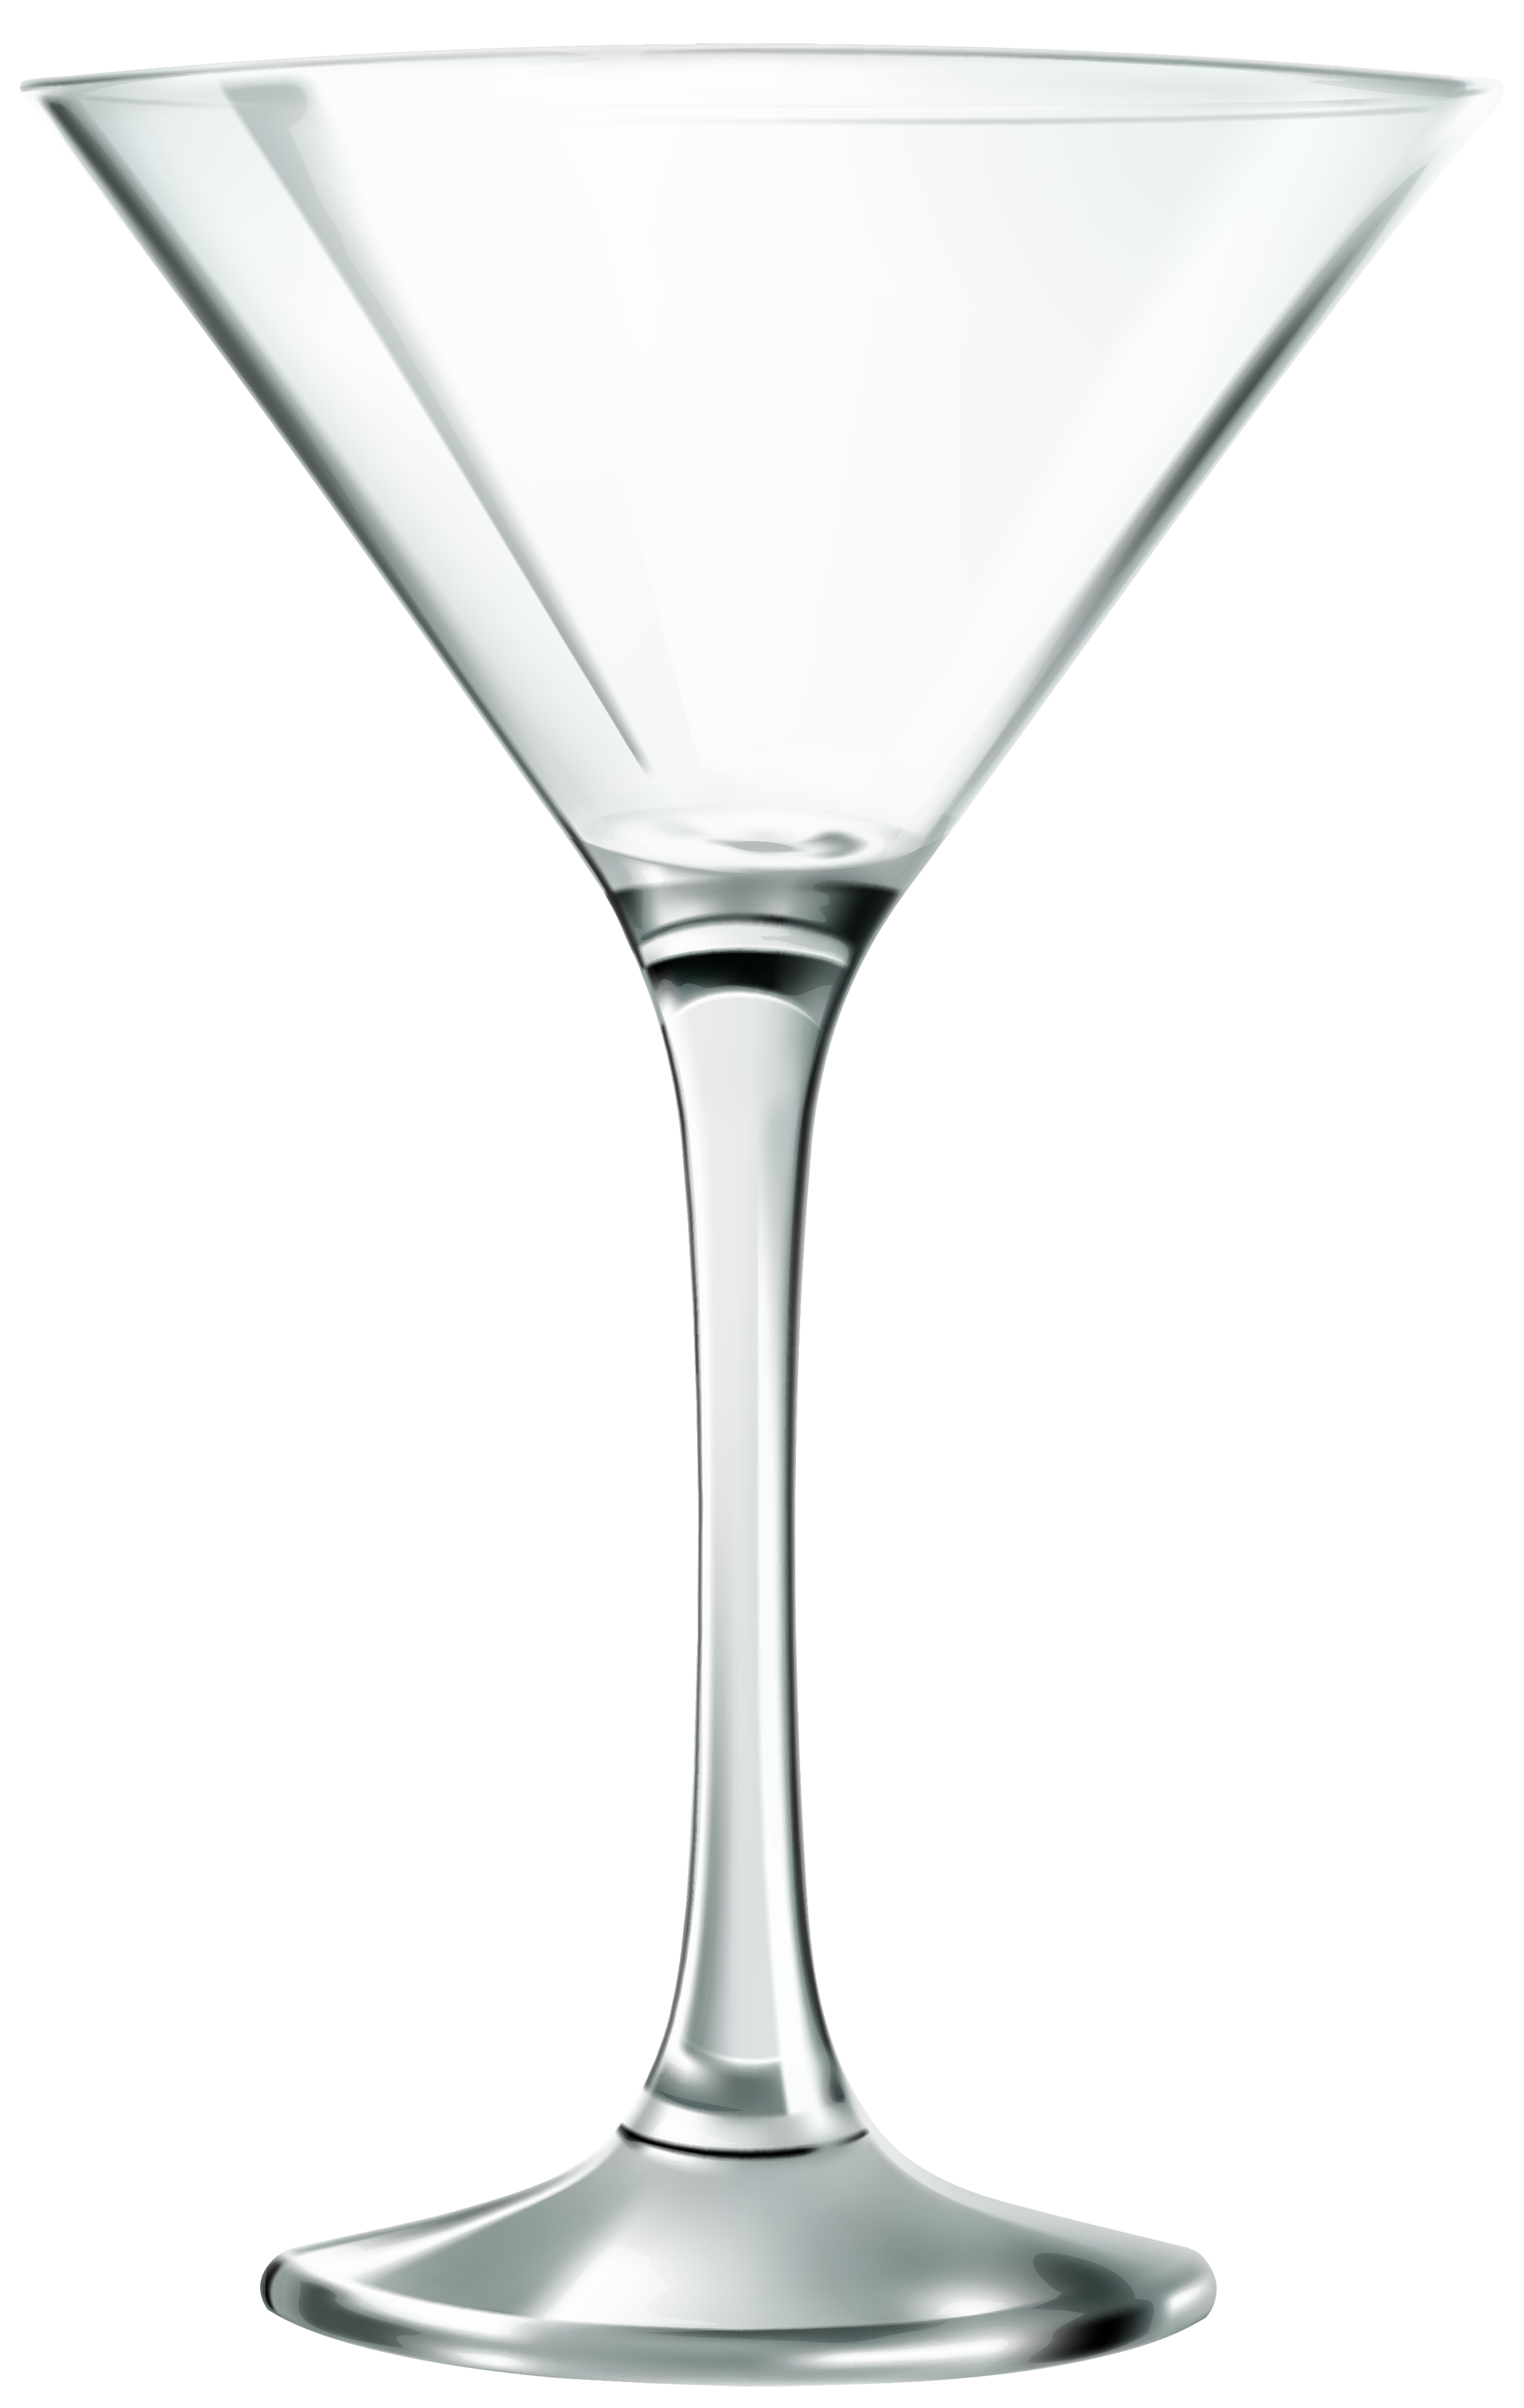 Empty glass clipart best. Martini silhouette png transparent library